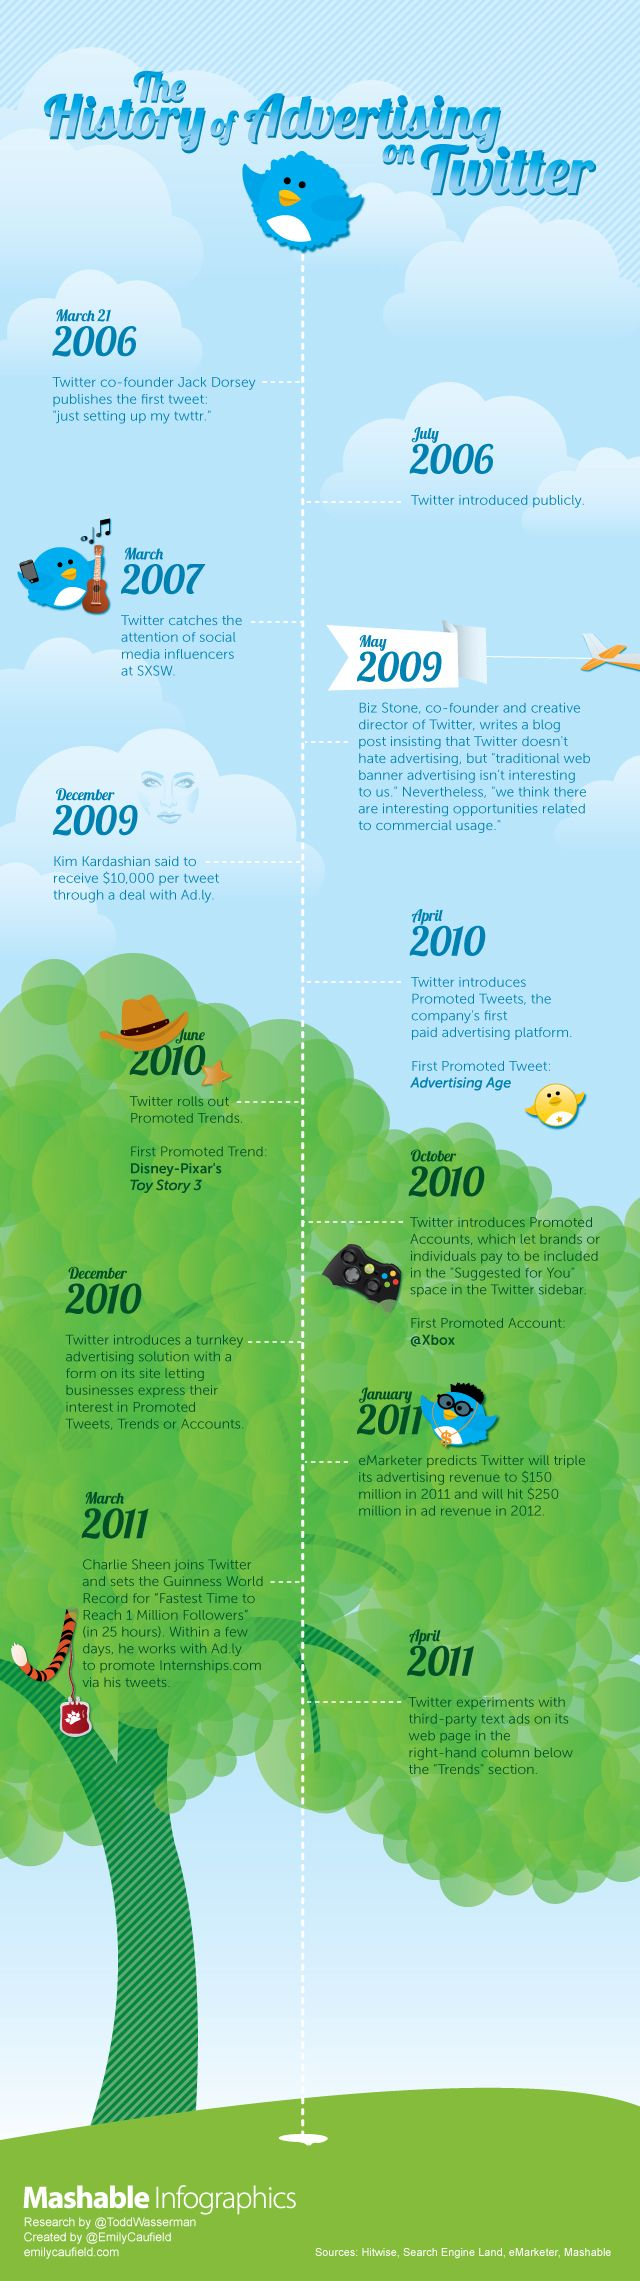 Digital Advertising, Twitter | The History of Advertising on Twitter    http://www.seoandcompany.co